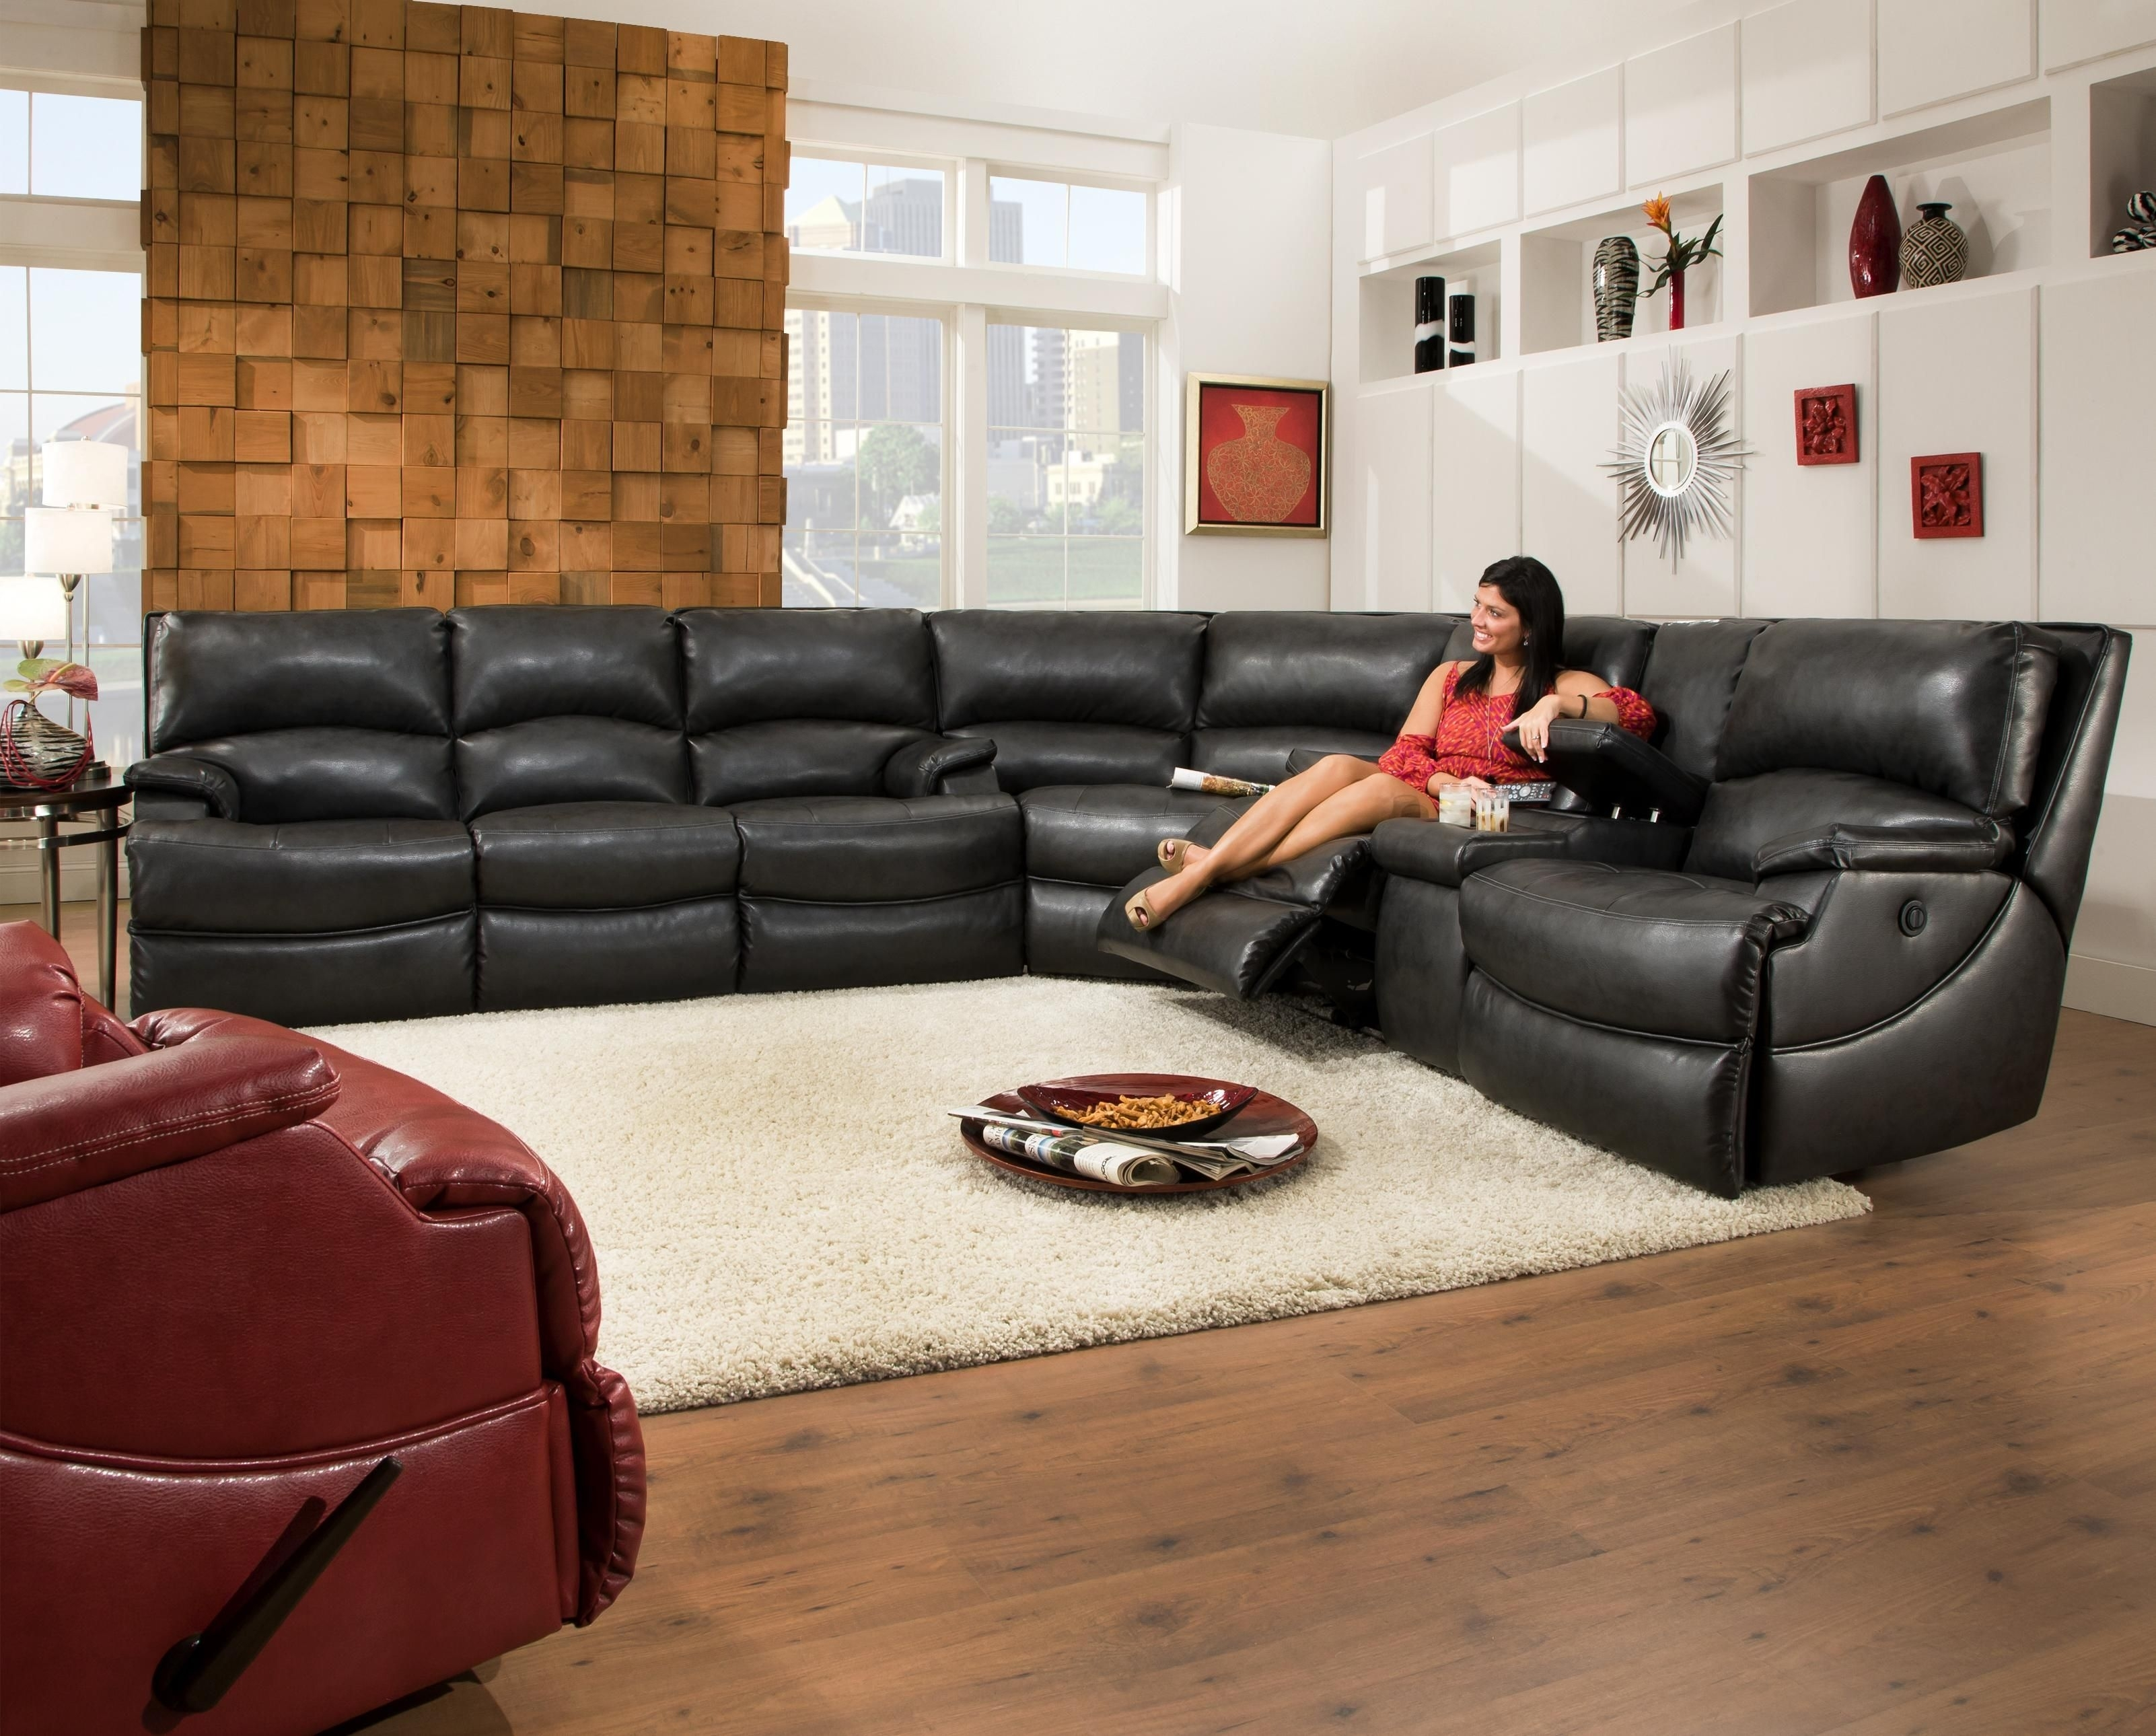 Southern Motion Shazam Six Seat Reclining Sectional Sofa With Cup Inside Tampa Sectional Sofas (View 8 of 10)